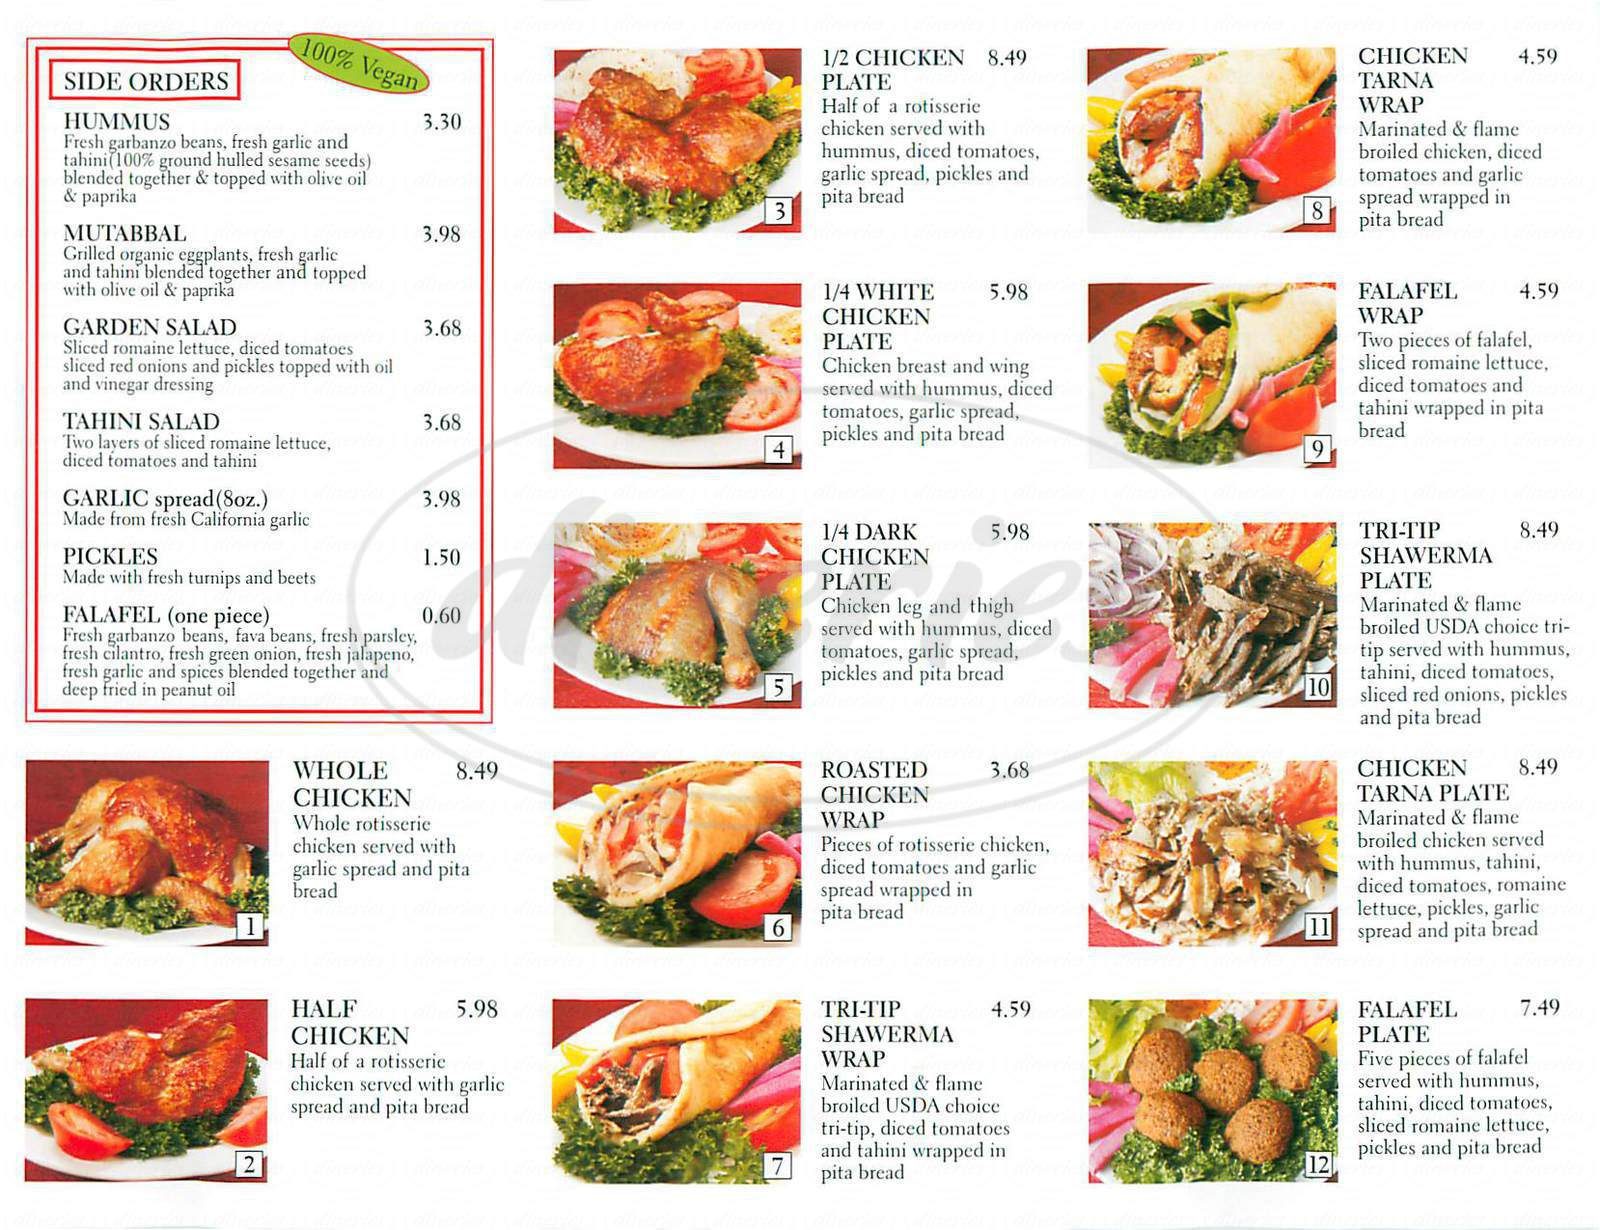 menu for Zankou Chicken